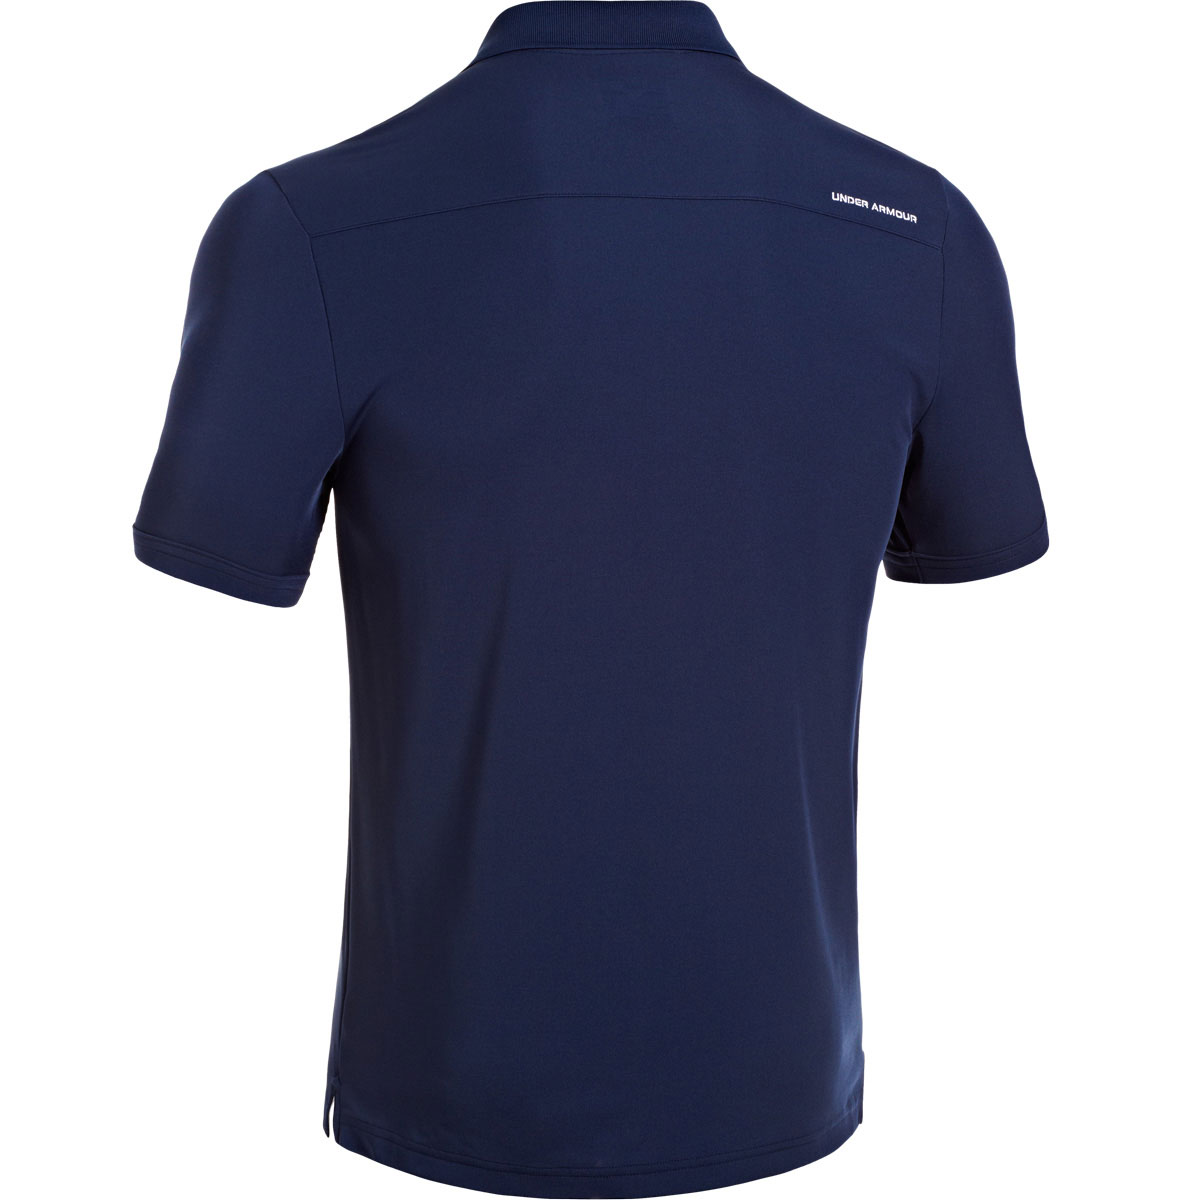 Under-Armour-Mens-2019-UA-Performance-Golf-Stretch-Durable-Polo-Shirt thumbnail 6